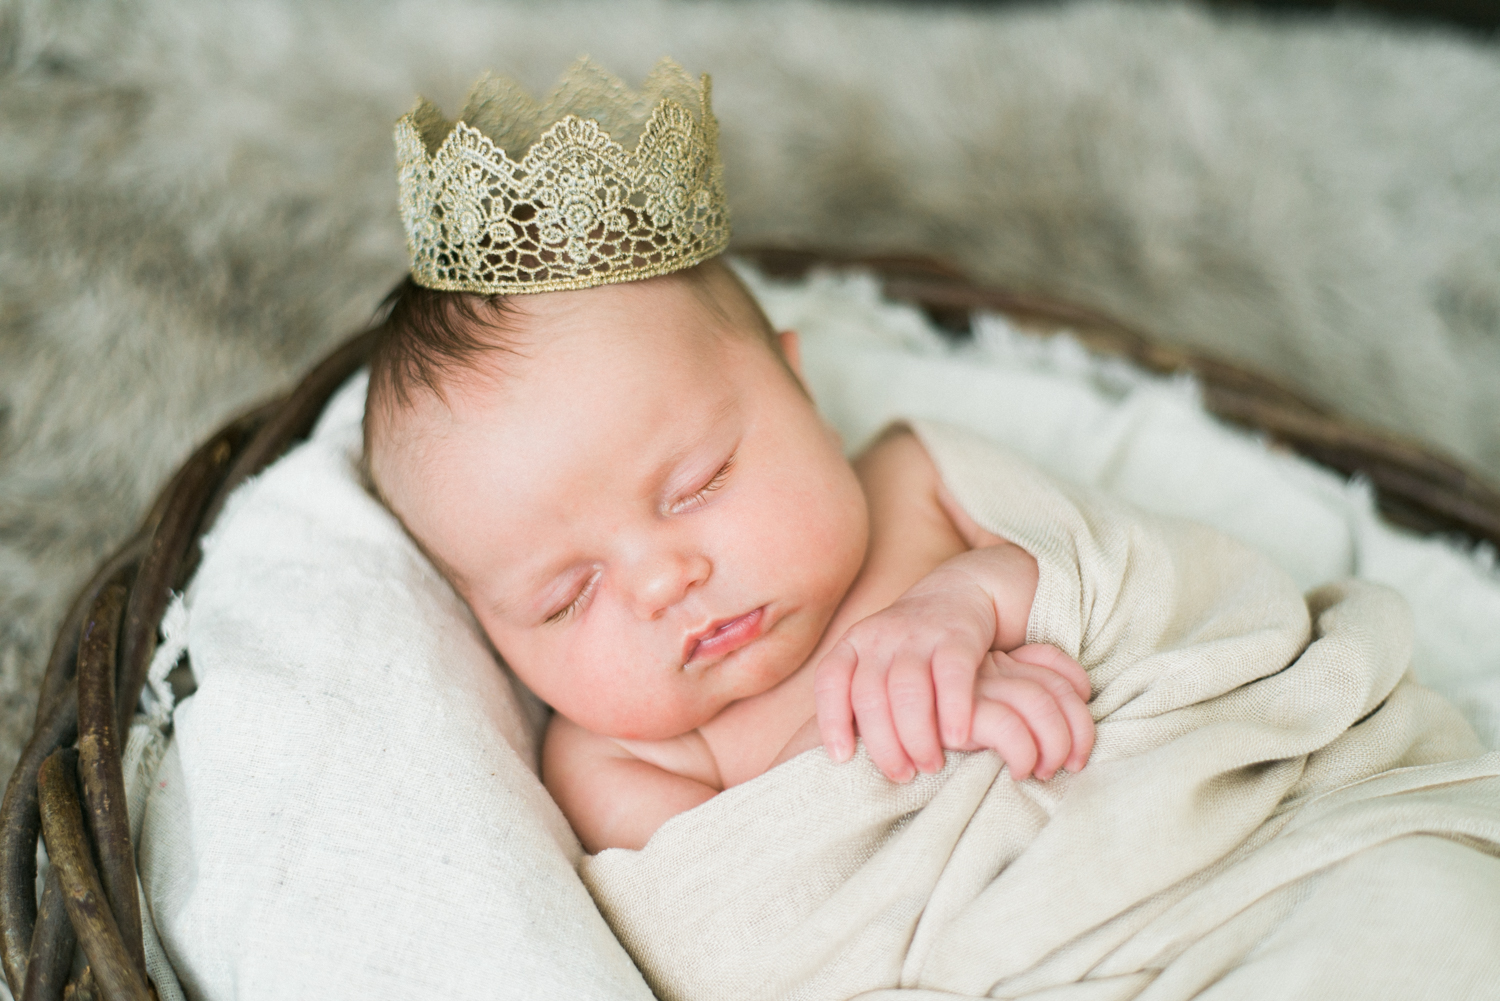 portland-newborn-photographer-baby-girl-crown-shelley-marie-photography-17